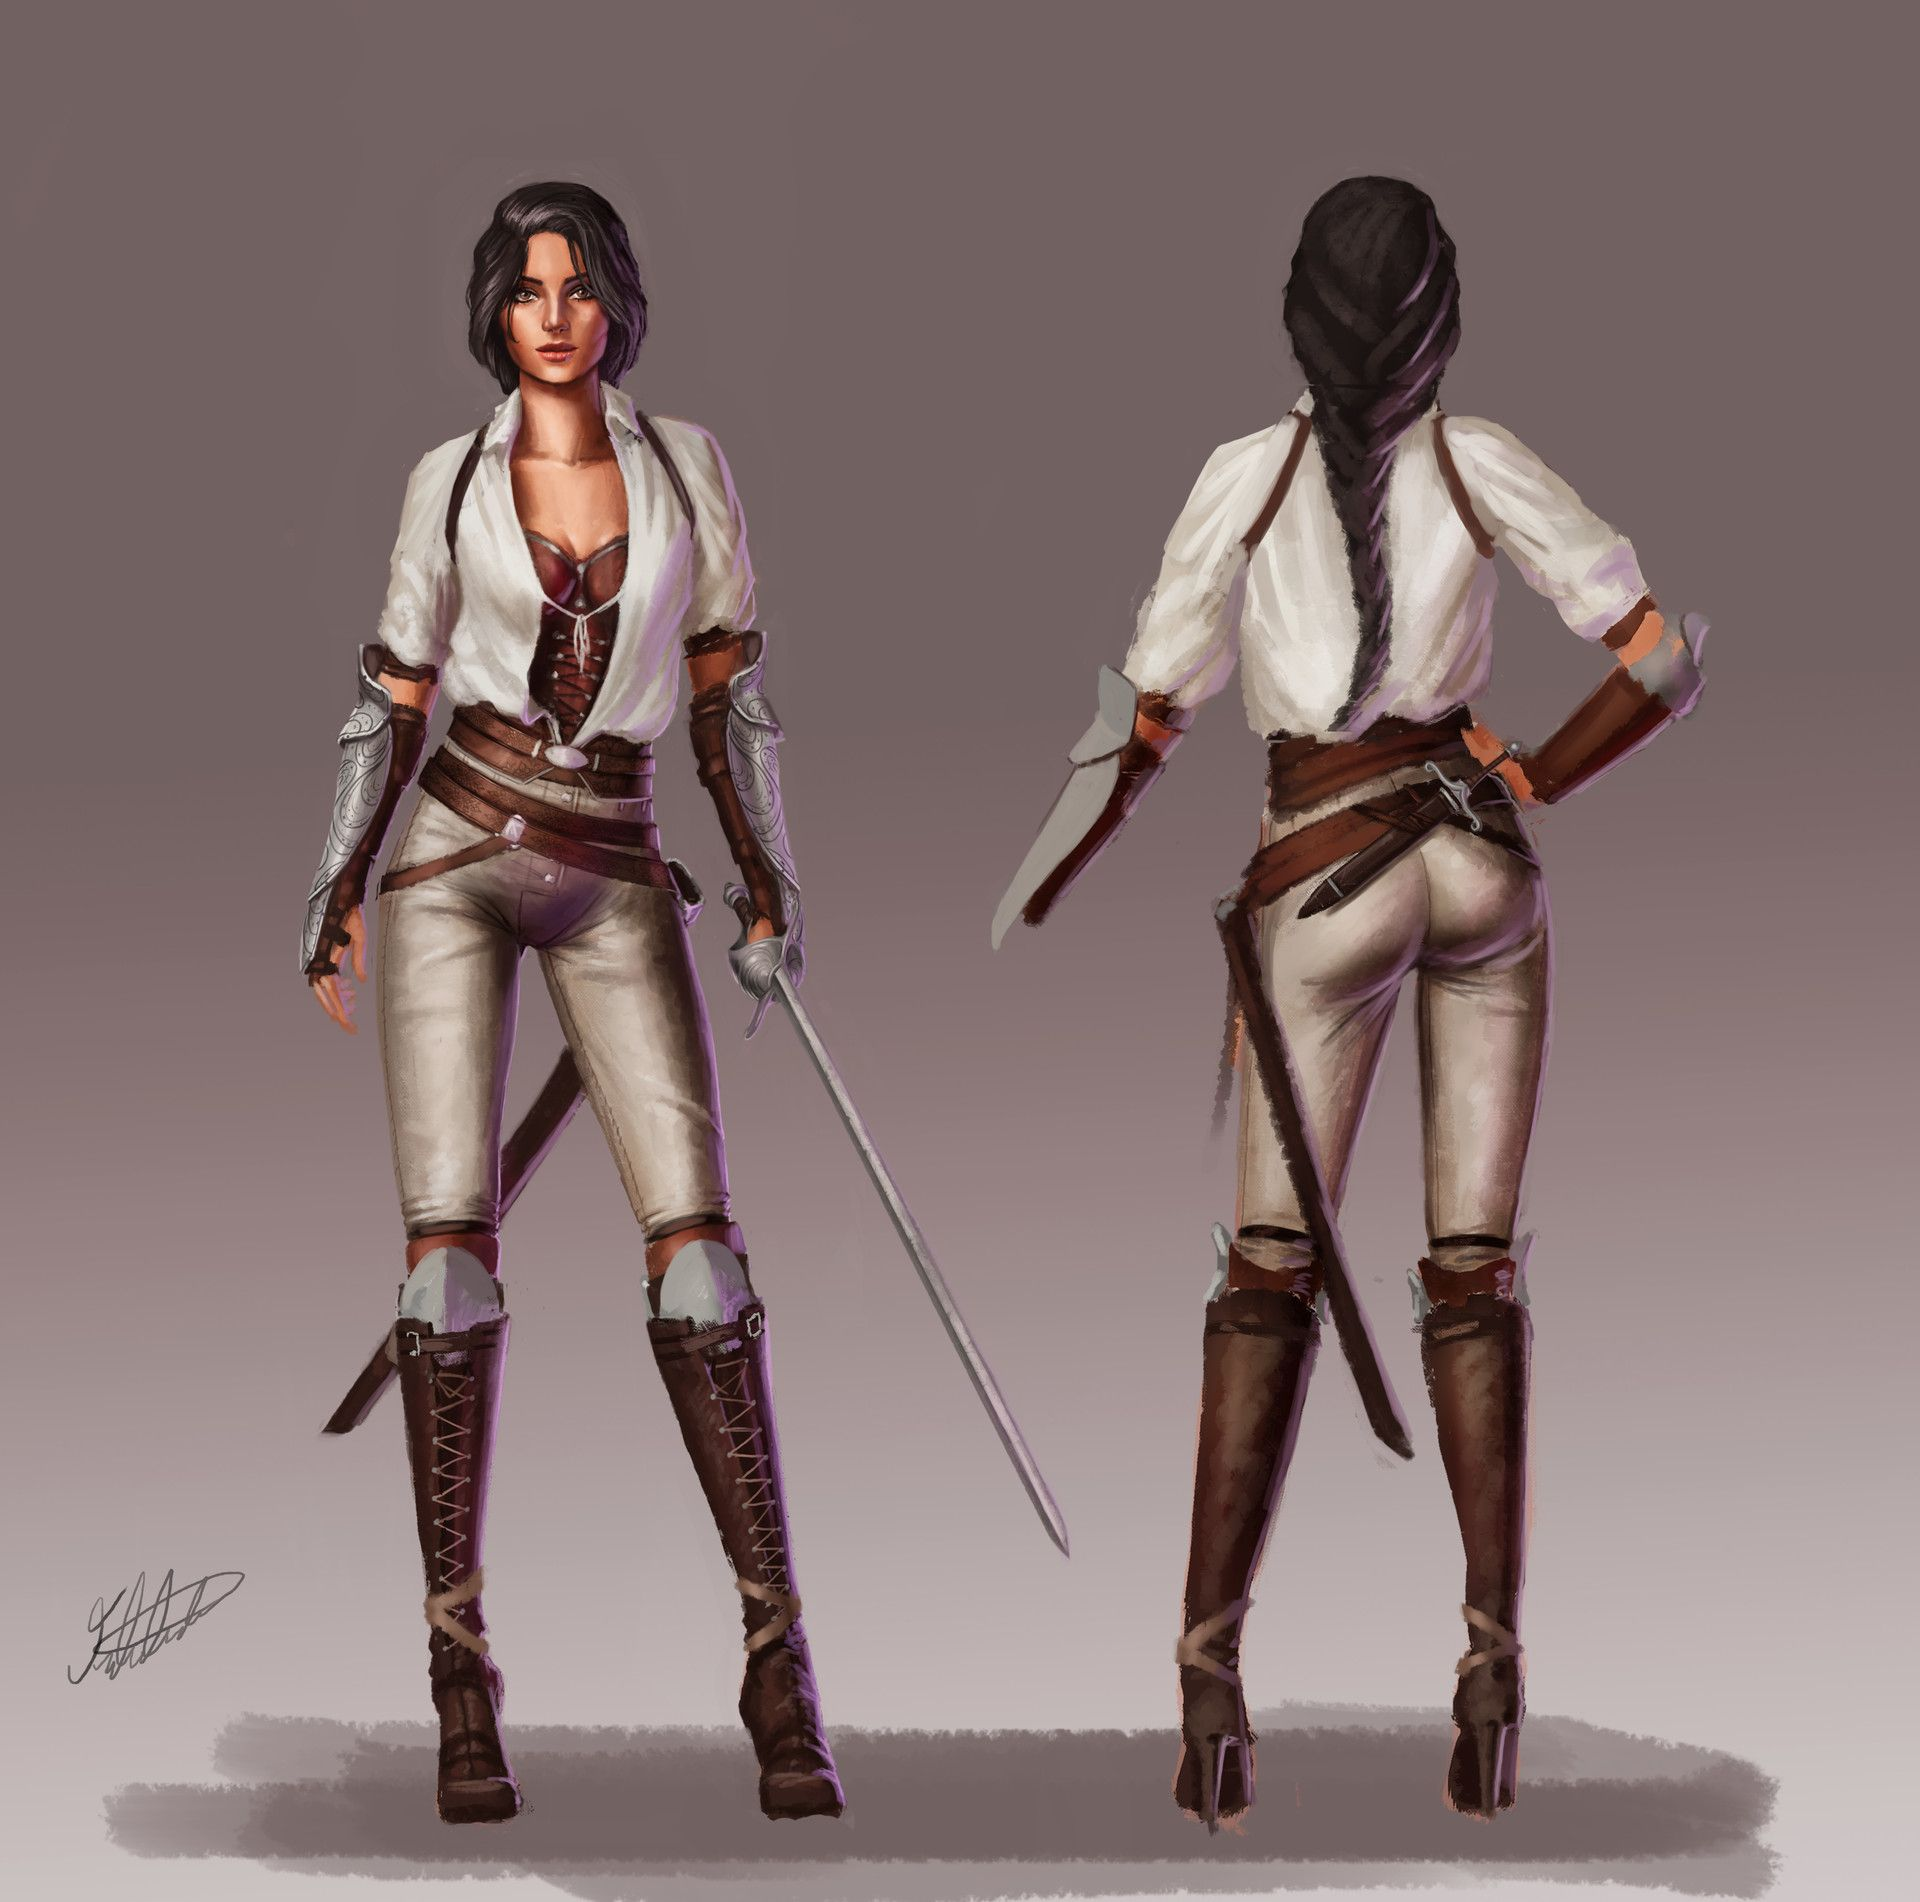 Character Design Artstation : Artstation female character design fencer fred almén